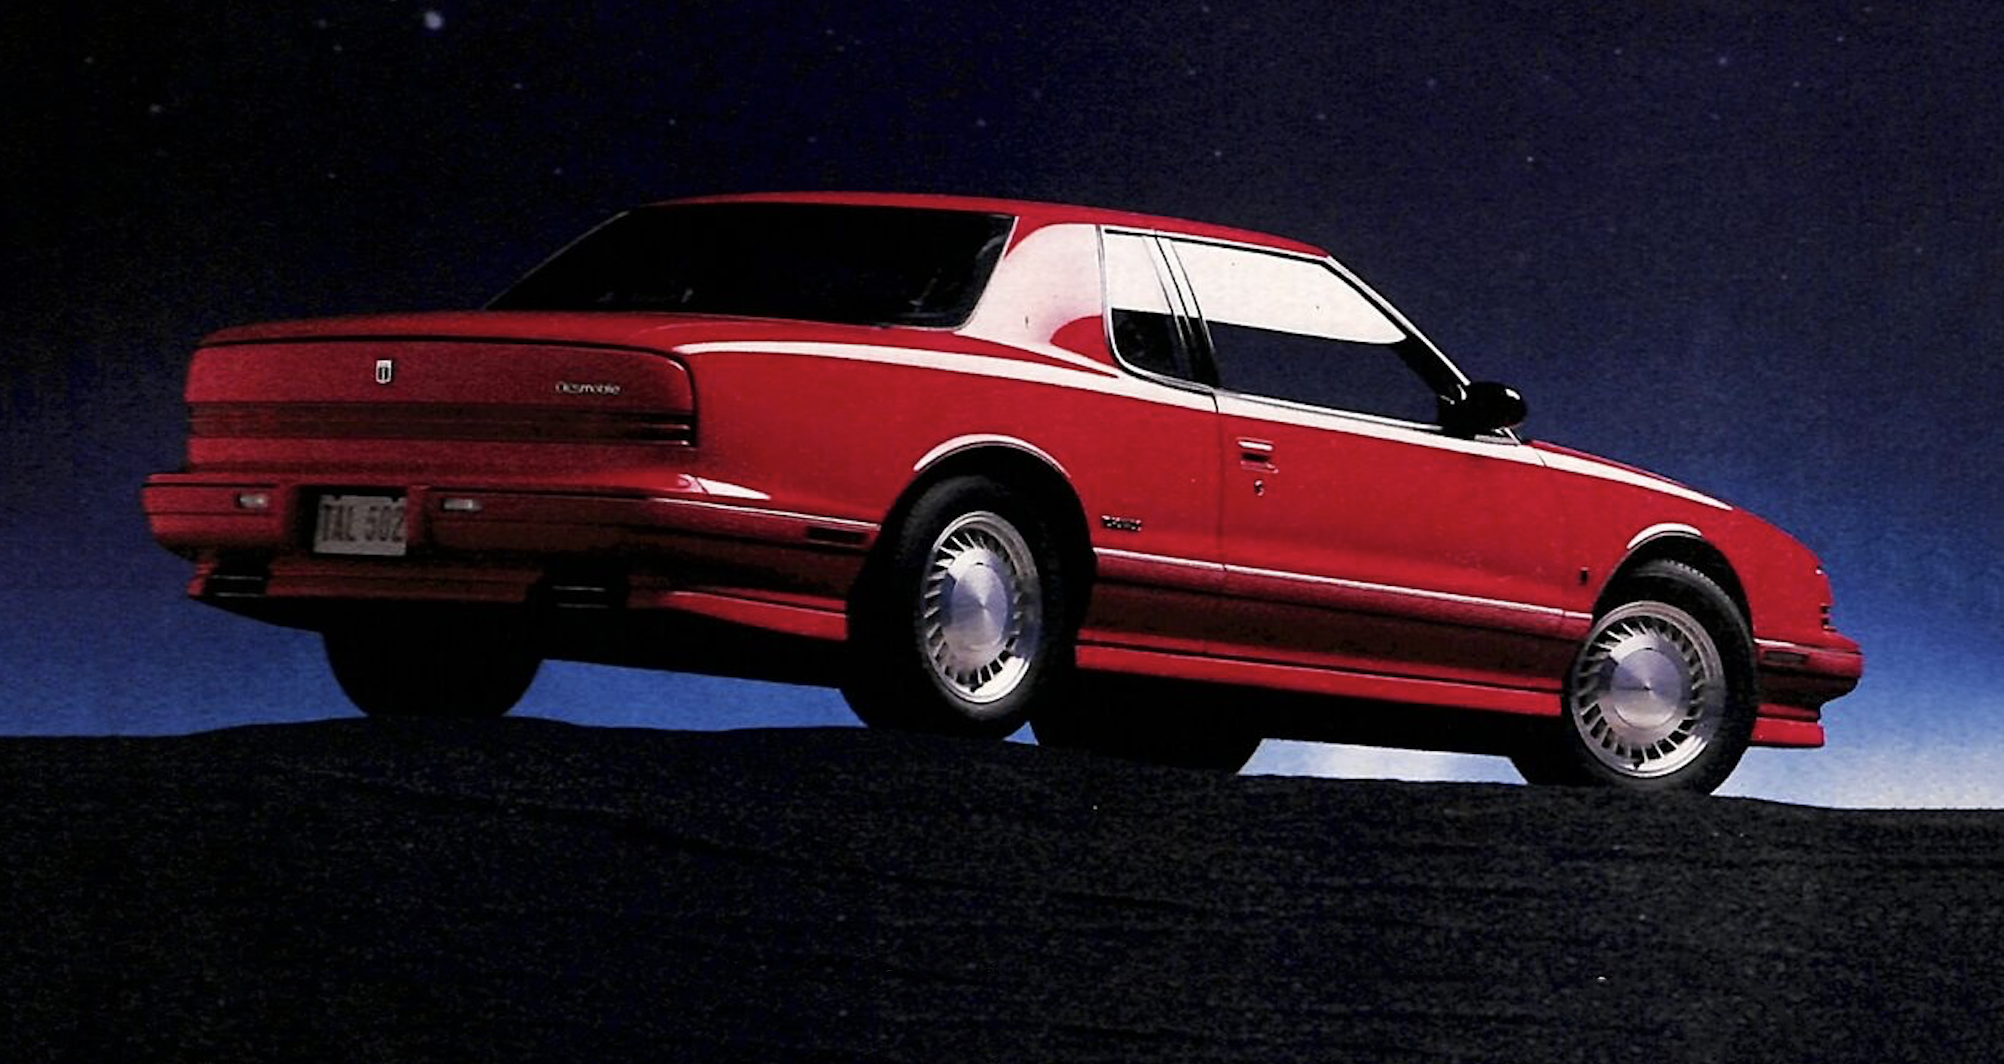 Classic Ads Featuring the Backs of Cars